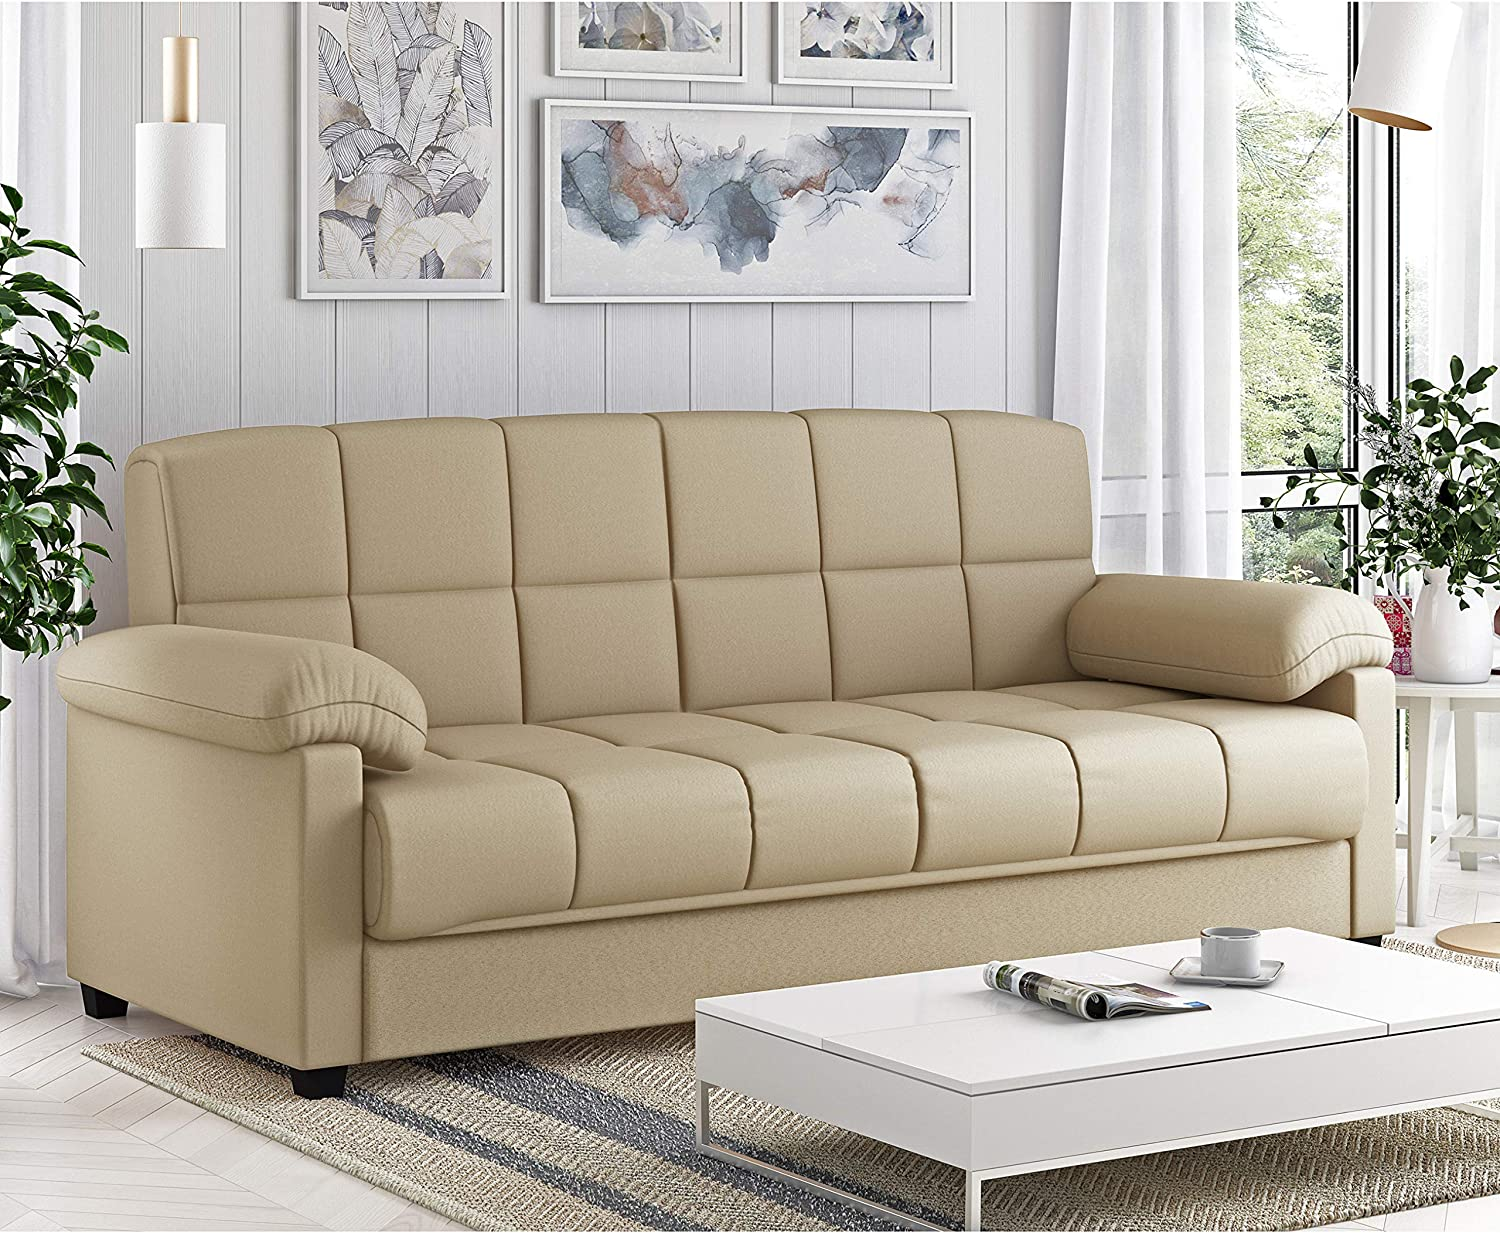 Handy Living Maurice Pillow Top Arm Convert A Couch In Mocha Microfiber Furniture Decor